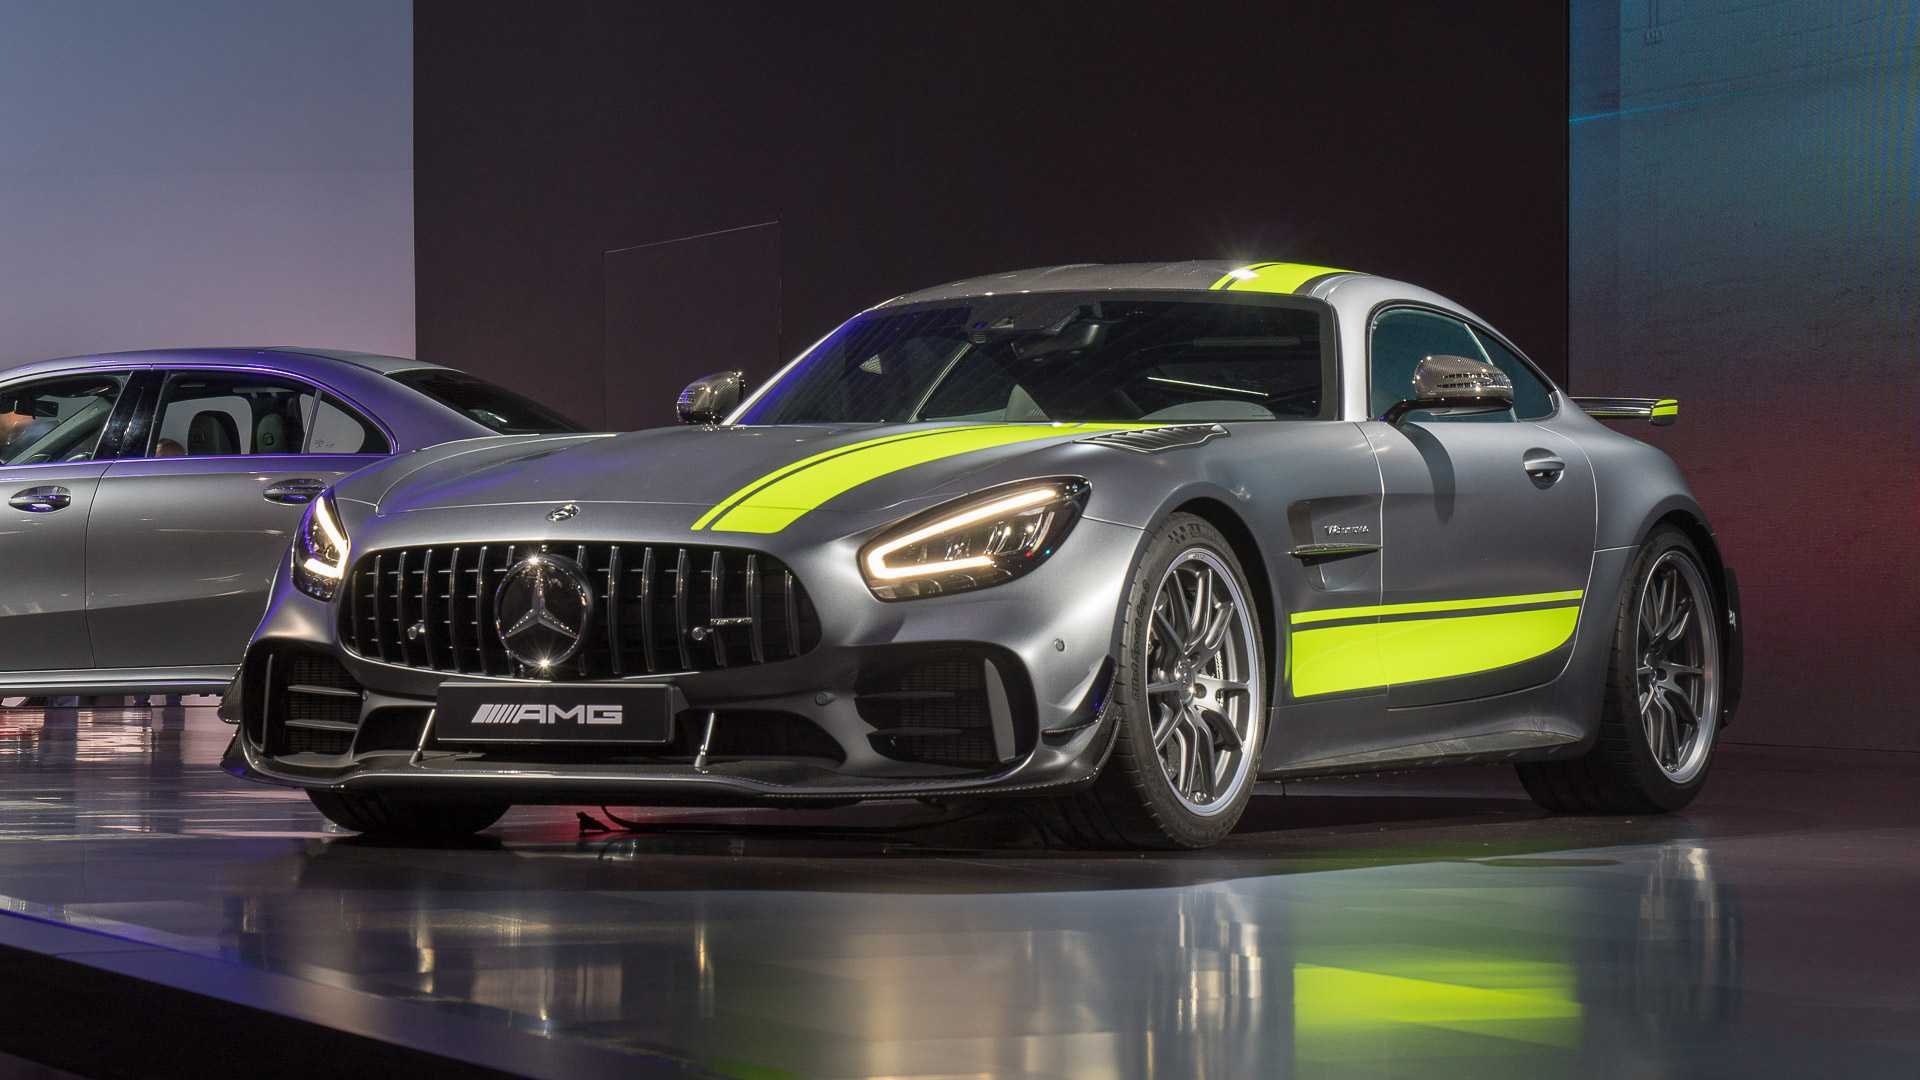 2020 Mercedes-AMG GT Revealed With Tech And Styling Updates